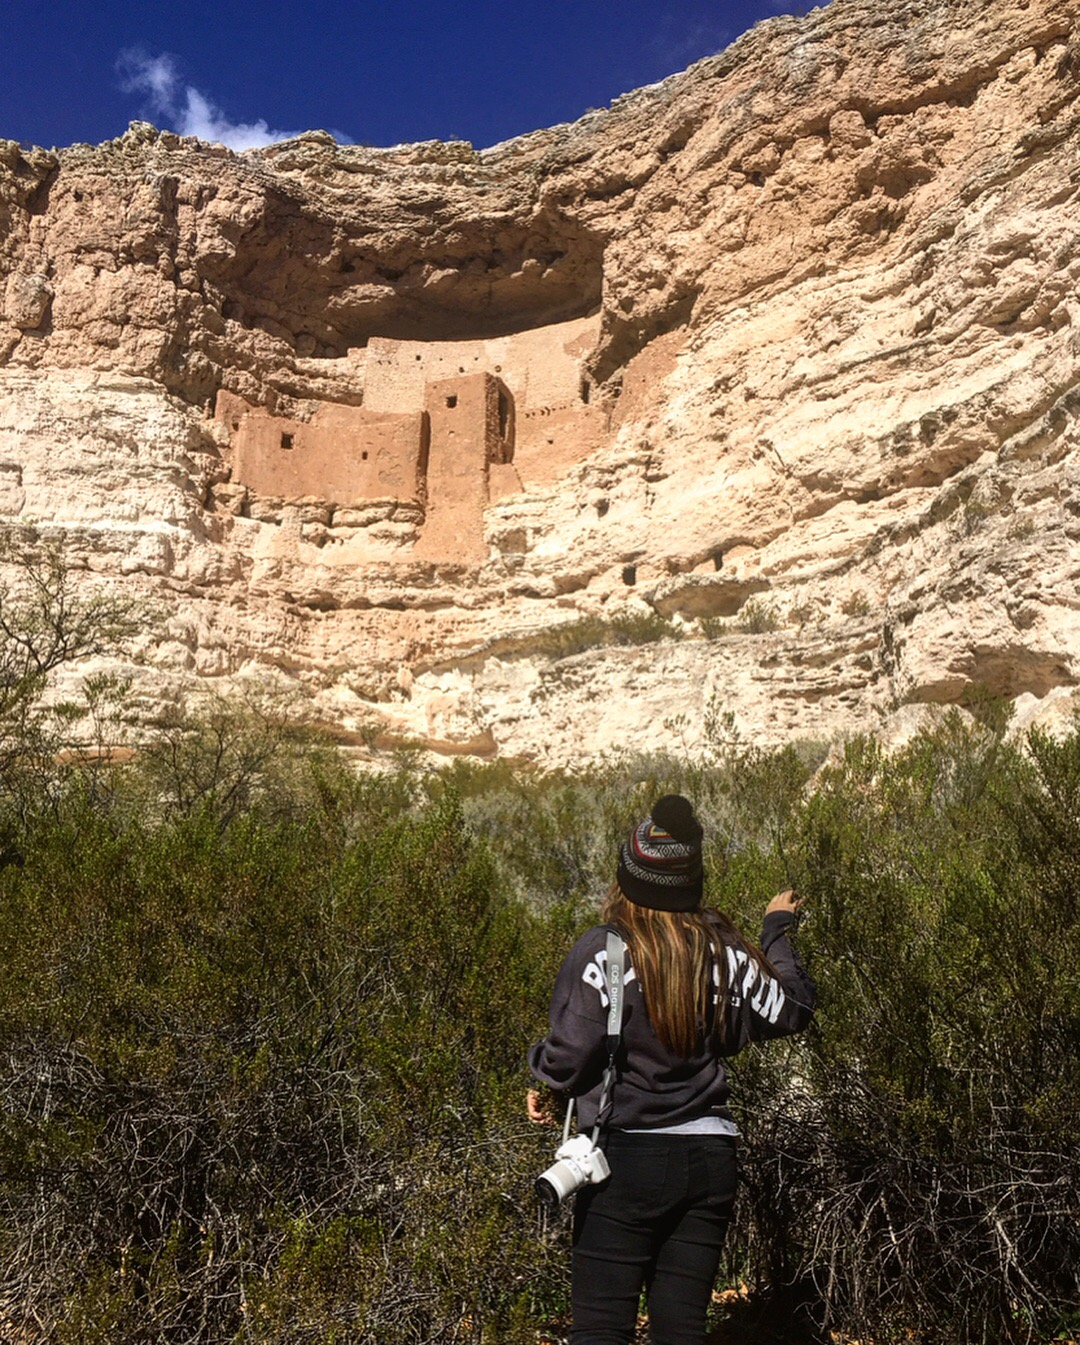 Camp Verde, Arizona: Was Montezuma Castle really Montezuma's Castle? A Look Into This Cliff Dwelling